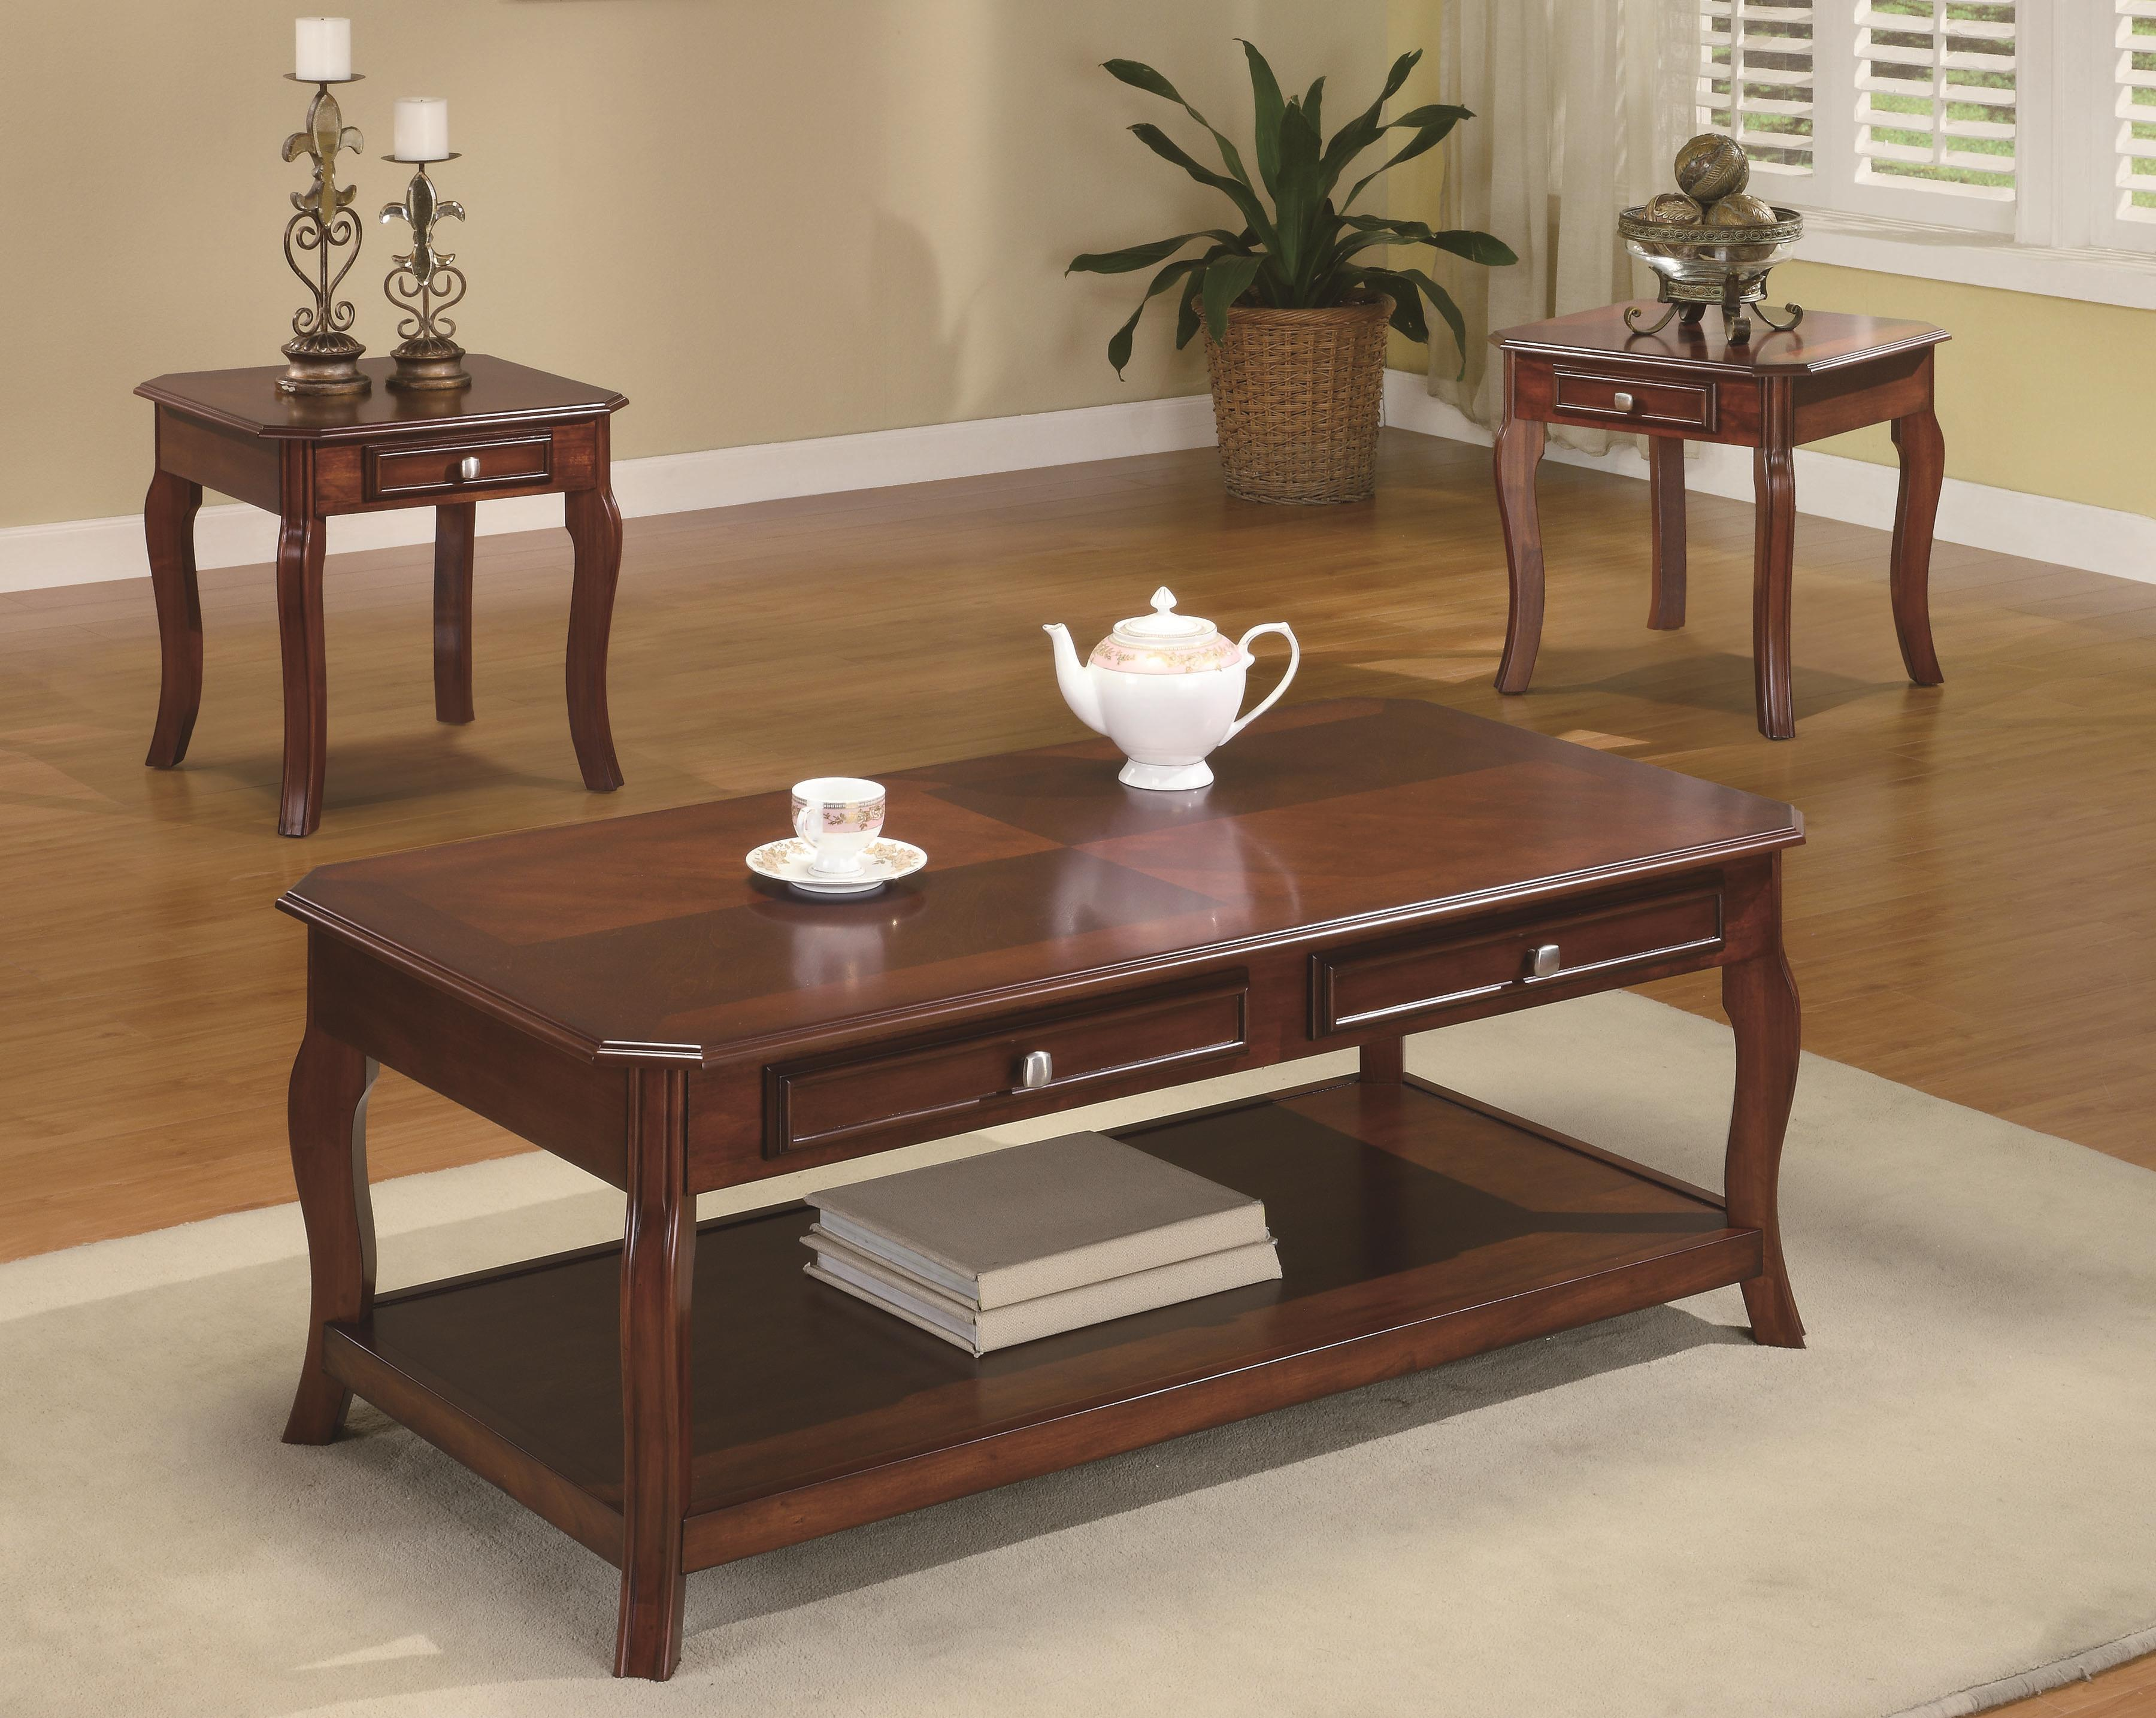 3 piece table set for living room wall coaster occasional sets traditional